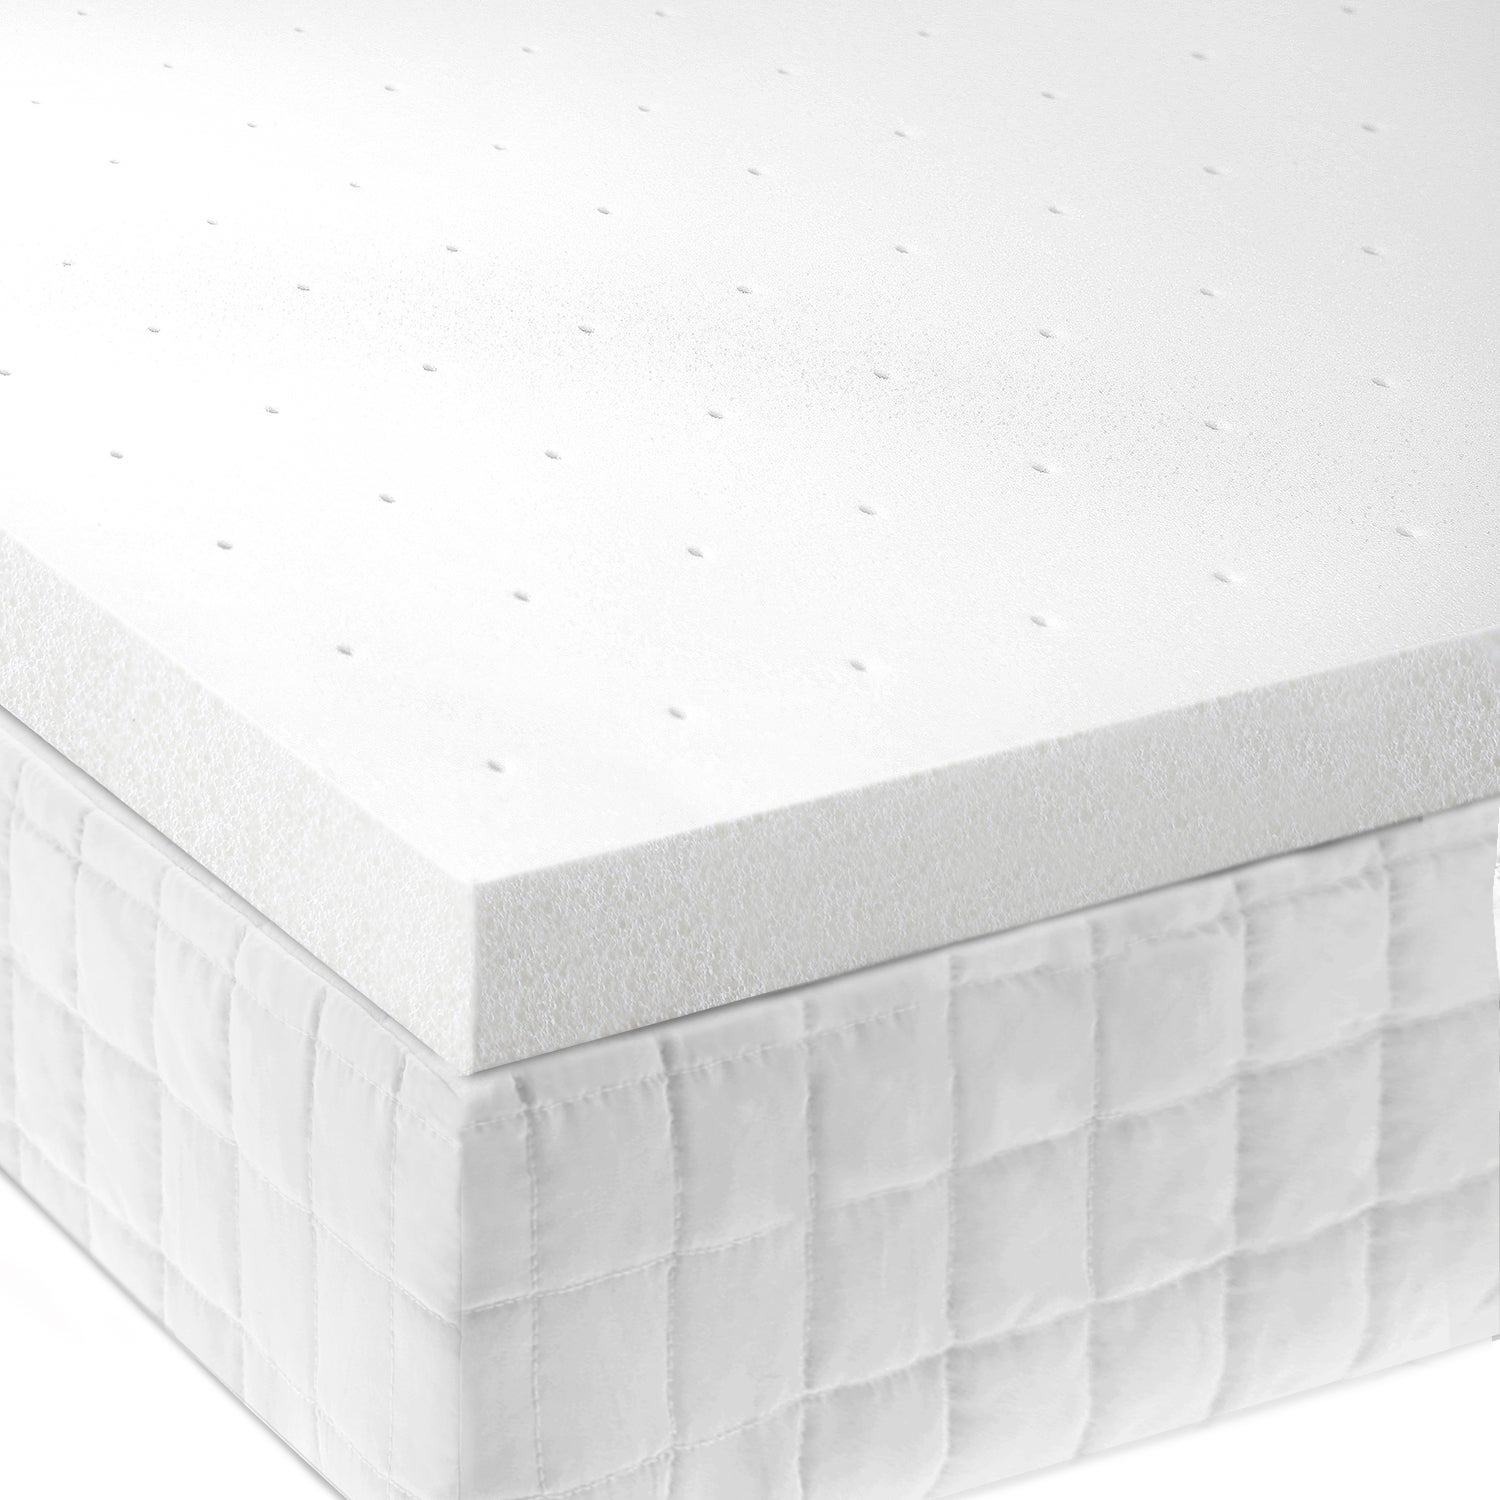 ISOLUS Ventilated 2 inch Memory Foam Mattress Topper Free